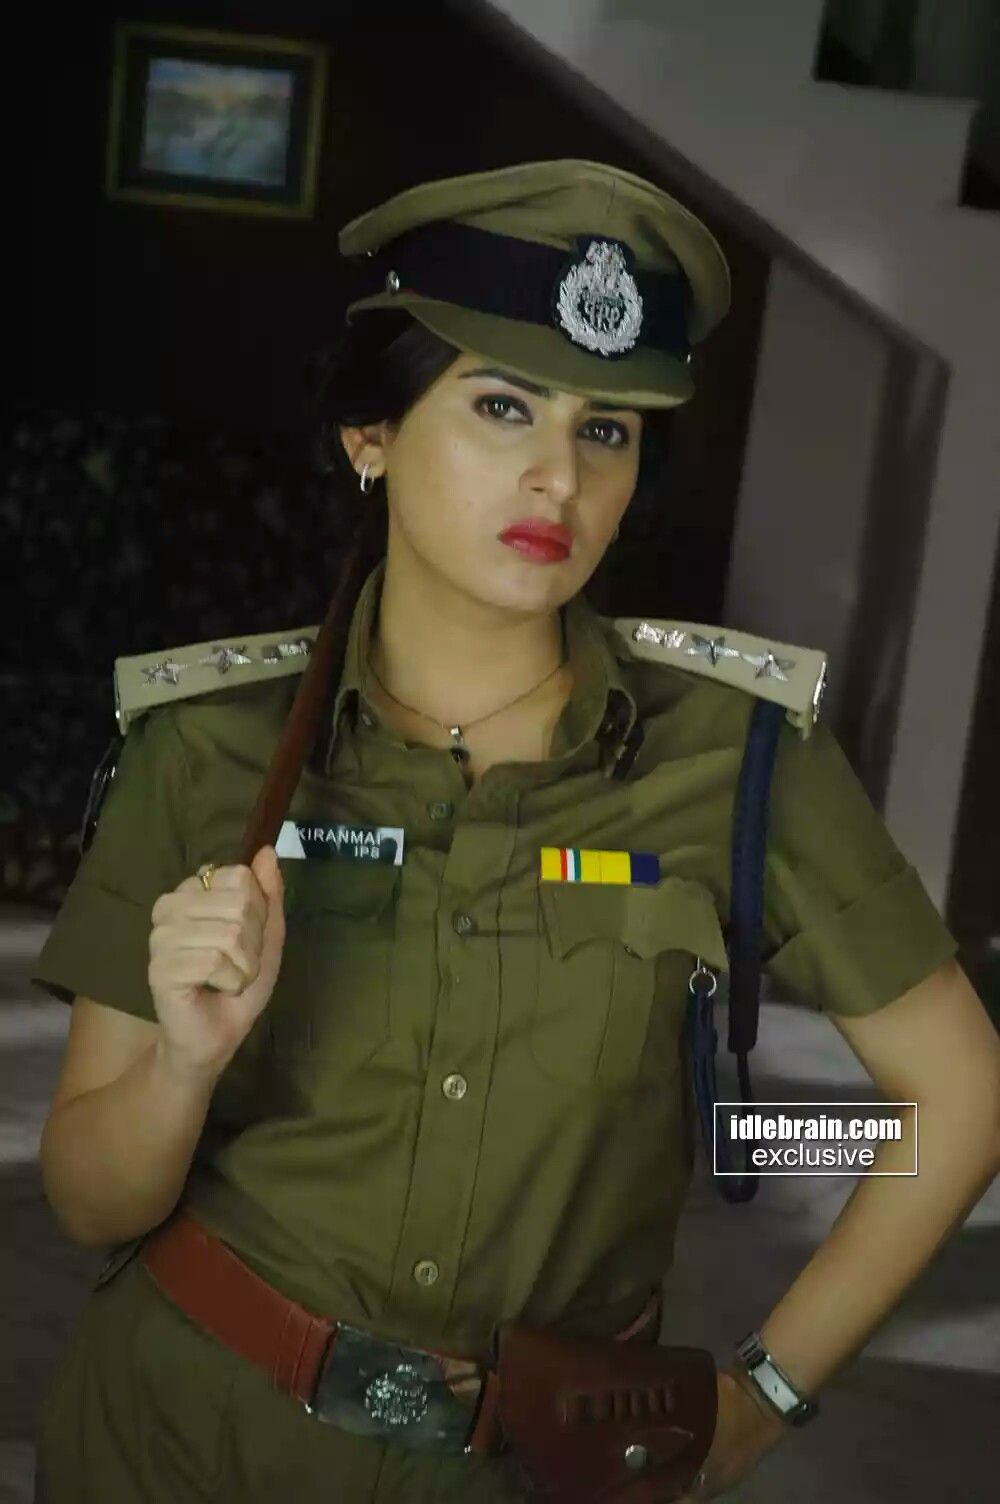 Ips Officer With Images Military Women Army Girl Military Girl